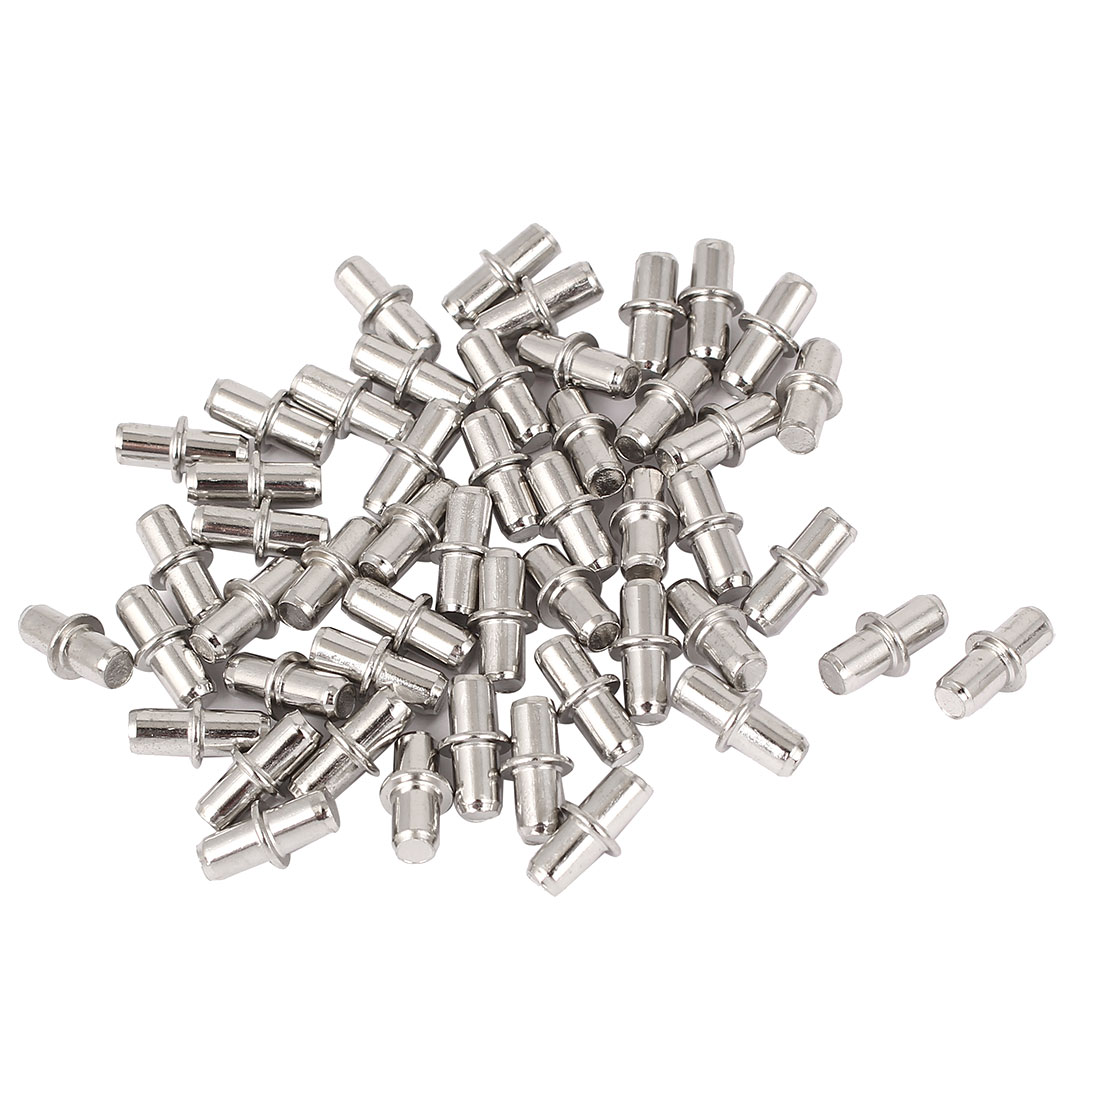 5mm Metal Furniture Cupboard Shelf Pins Pegs Supports Holder 50 Pcs